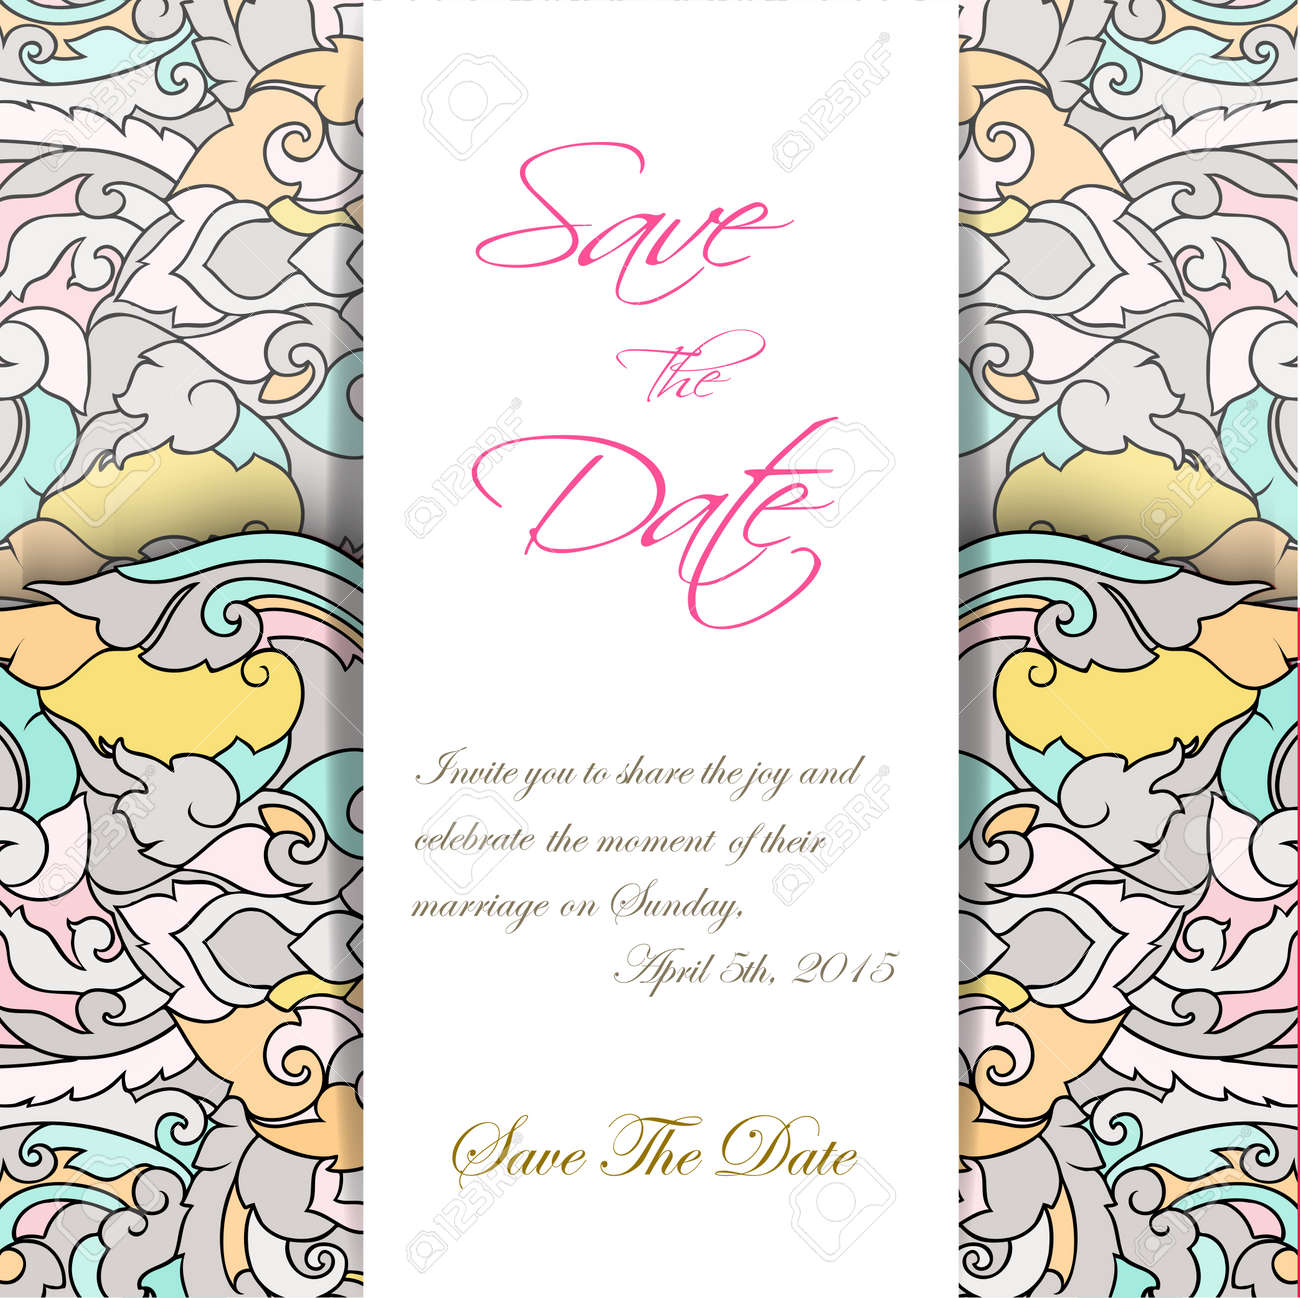 Wedding Invitation Card Suite With Thai Ornament Templates Vector